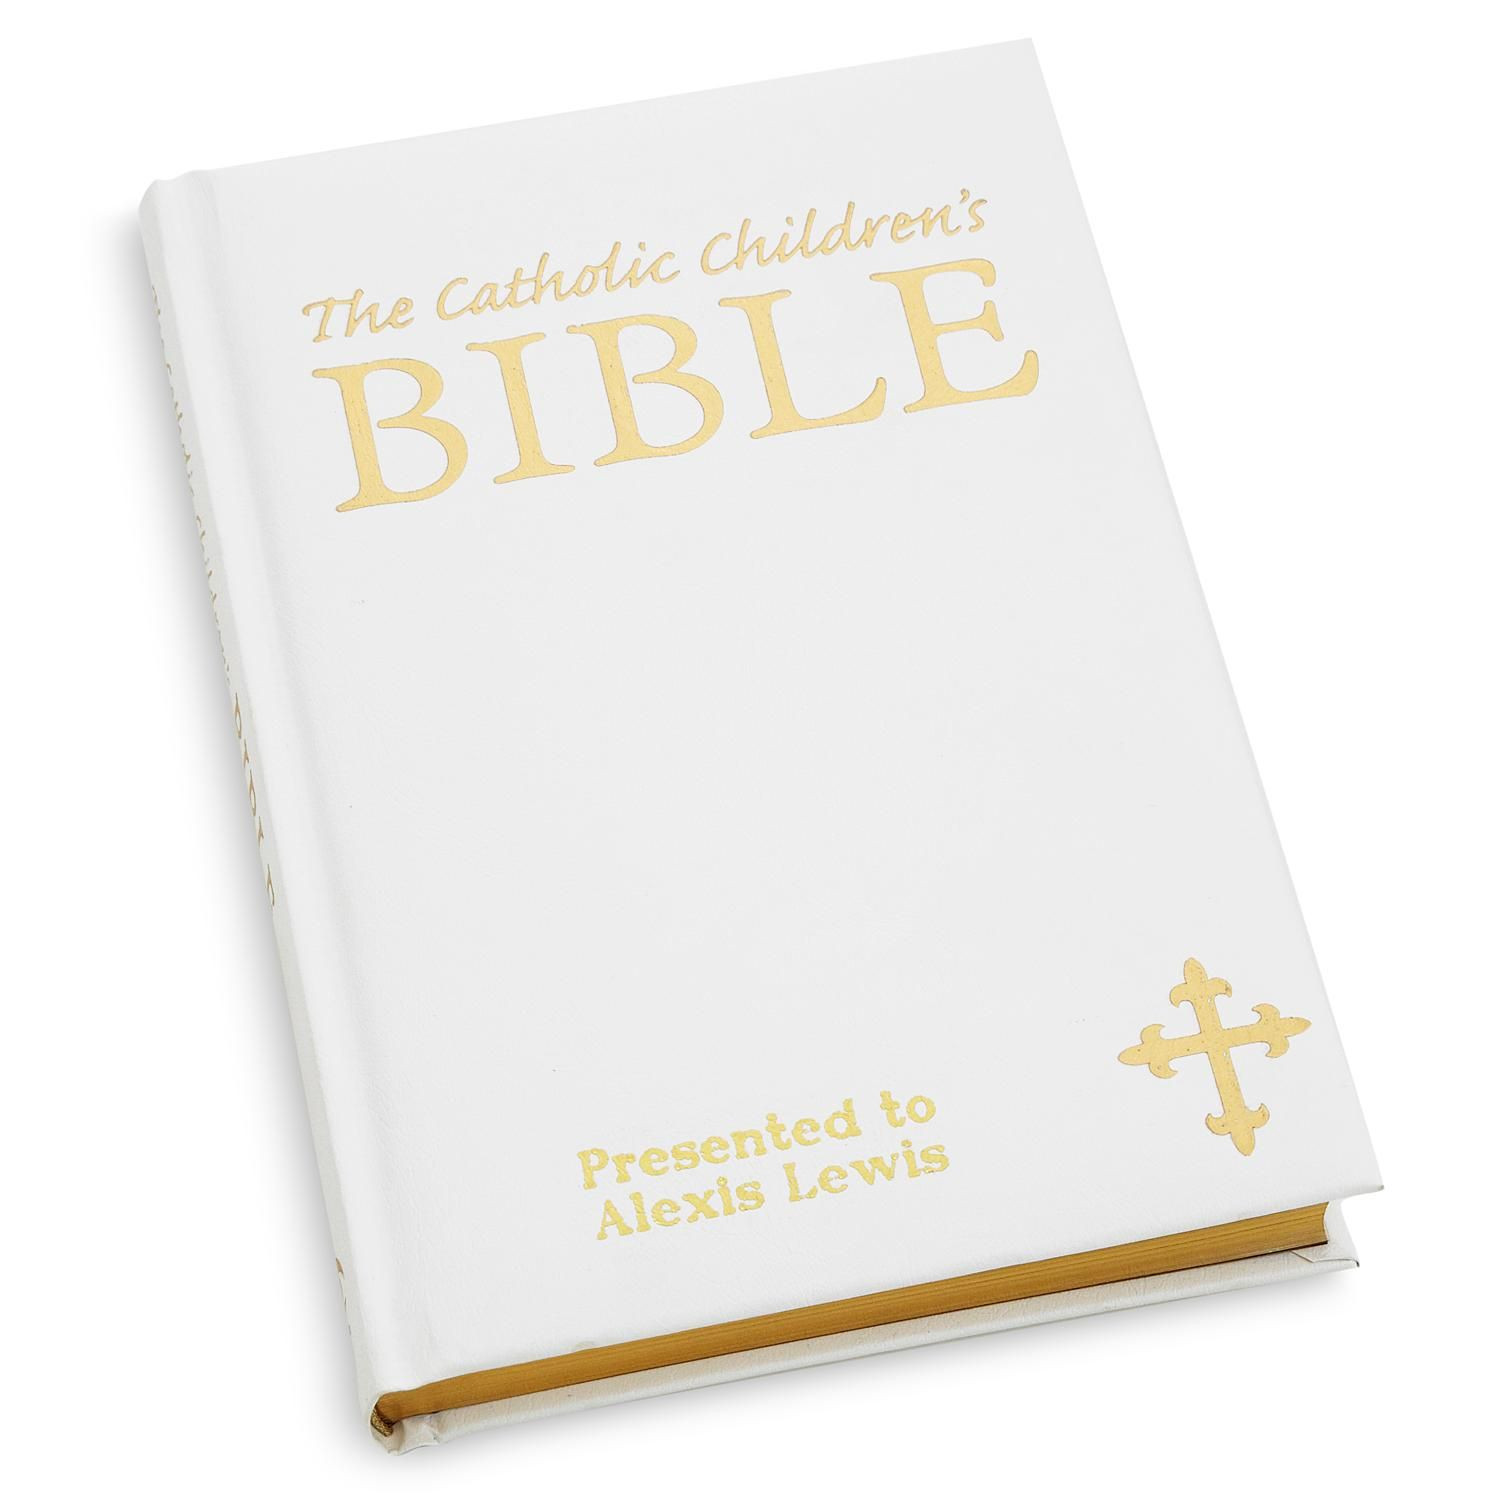 Catholic Children Gifts  Catholic Children's Bible White